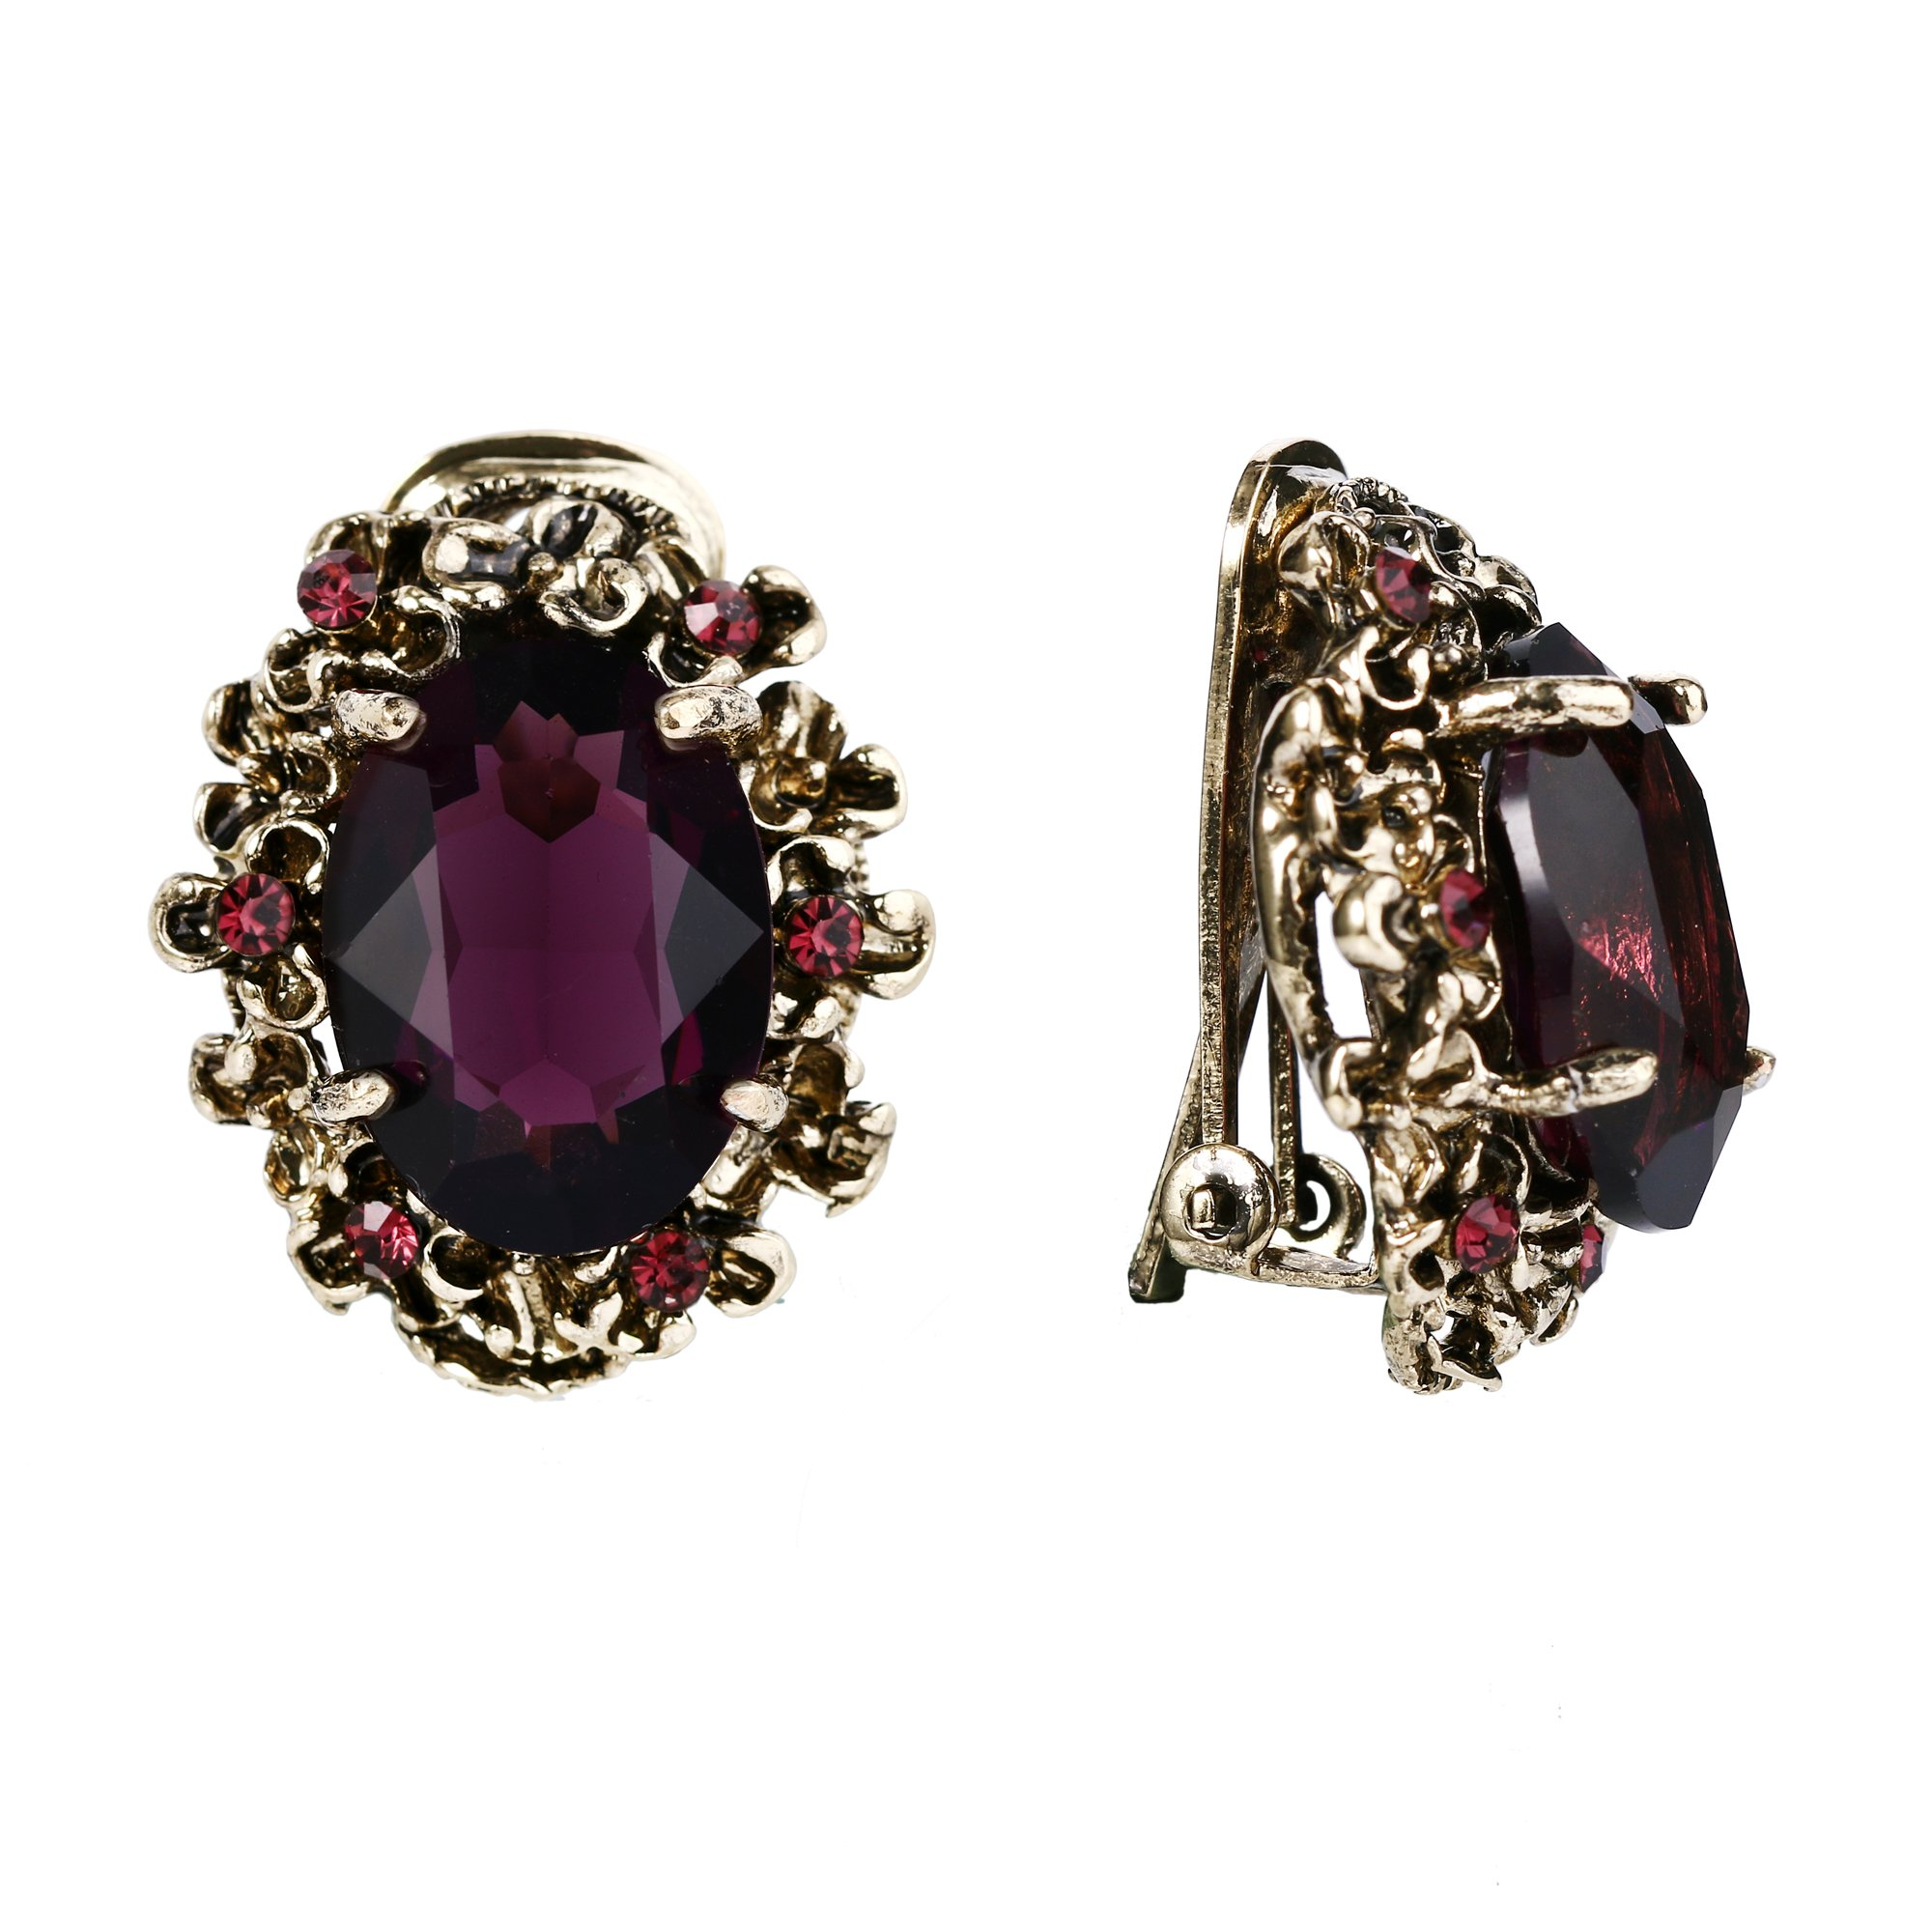 BriLove Antique-Gold-Toned Clip-On Earrings Women's Victorian Style Crystal Floral Cameo Inspired Oval Earrings Amethyst Color